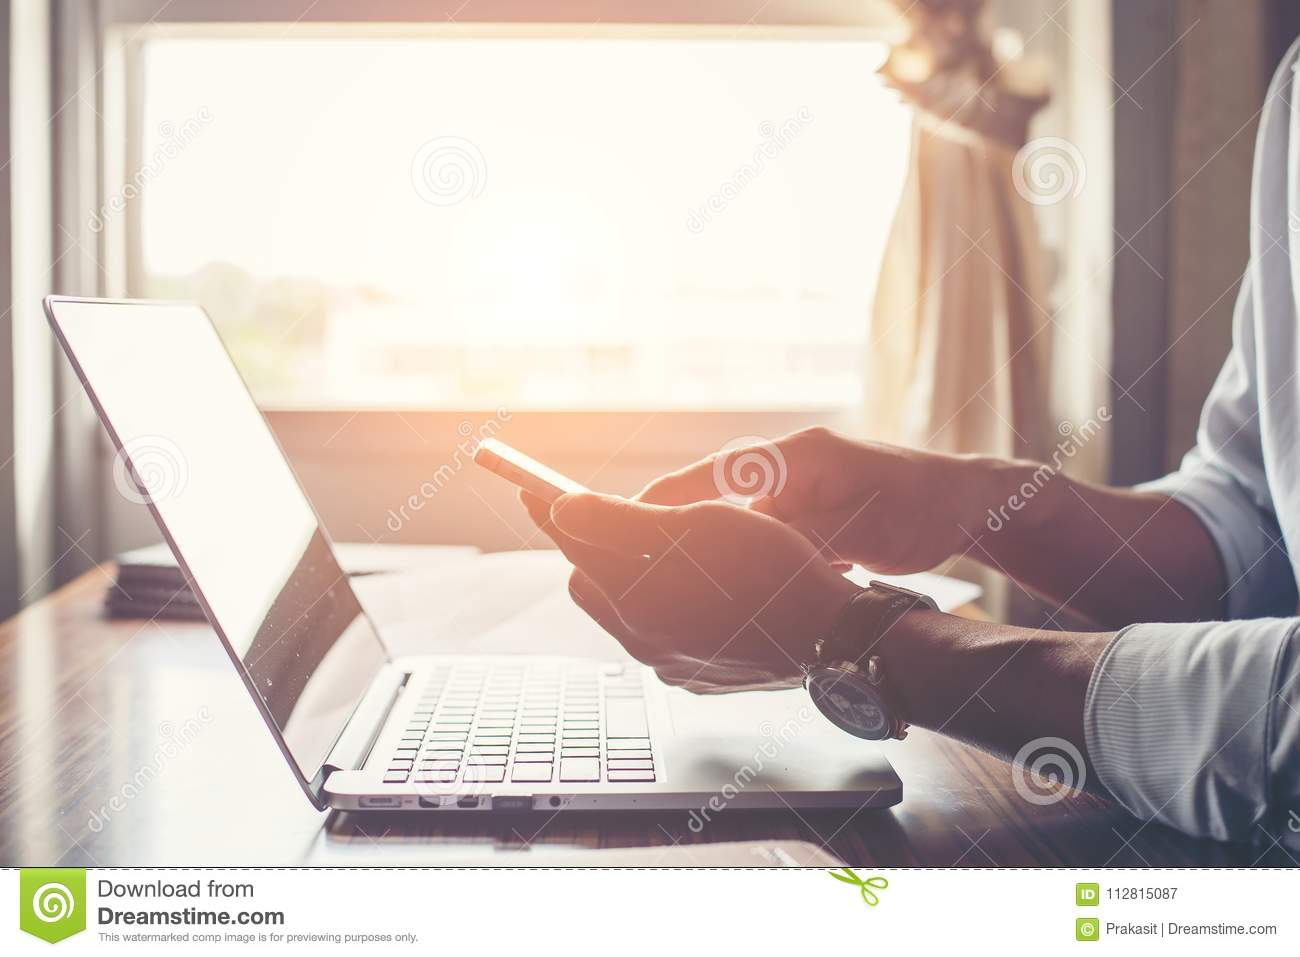 Businessman hands using cell phone with laptop at office desk.